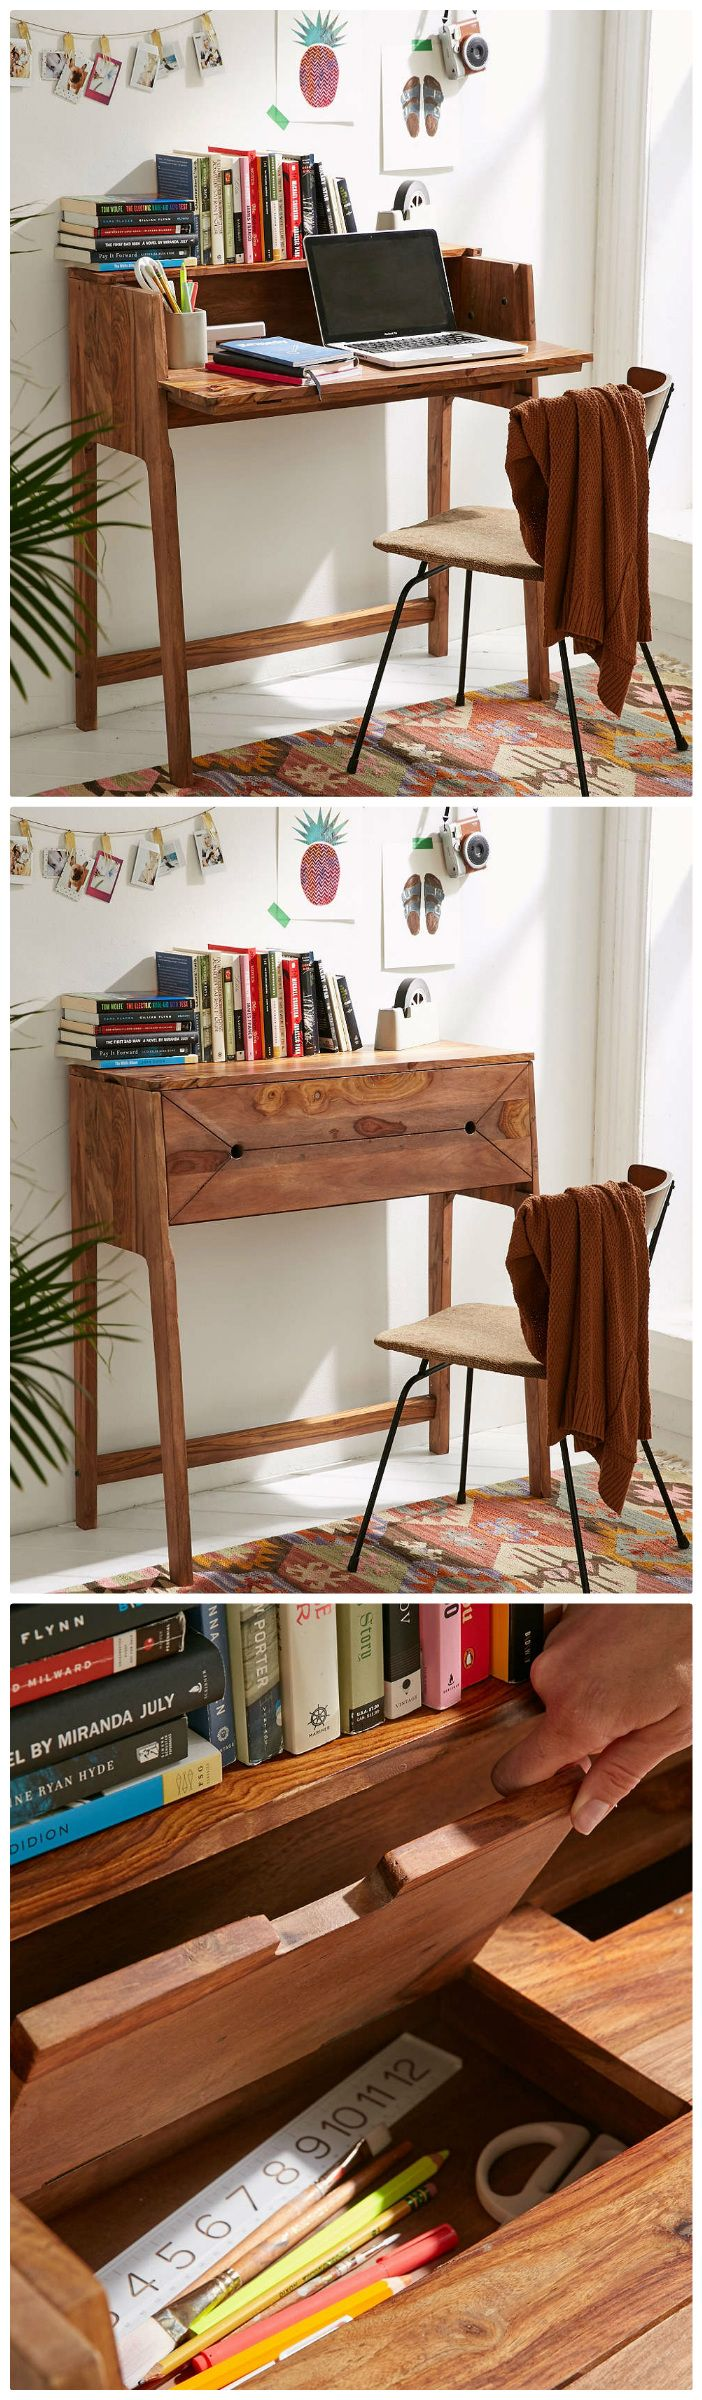 Best 25+ Small desks ideas on Pinterest | Small desk bedroom ...